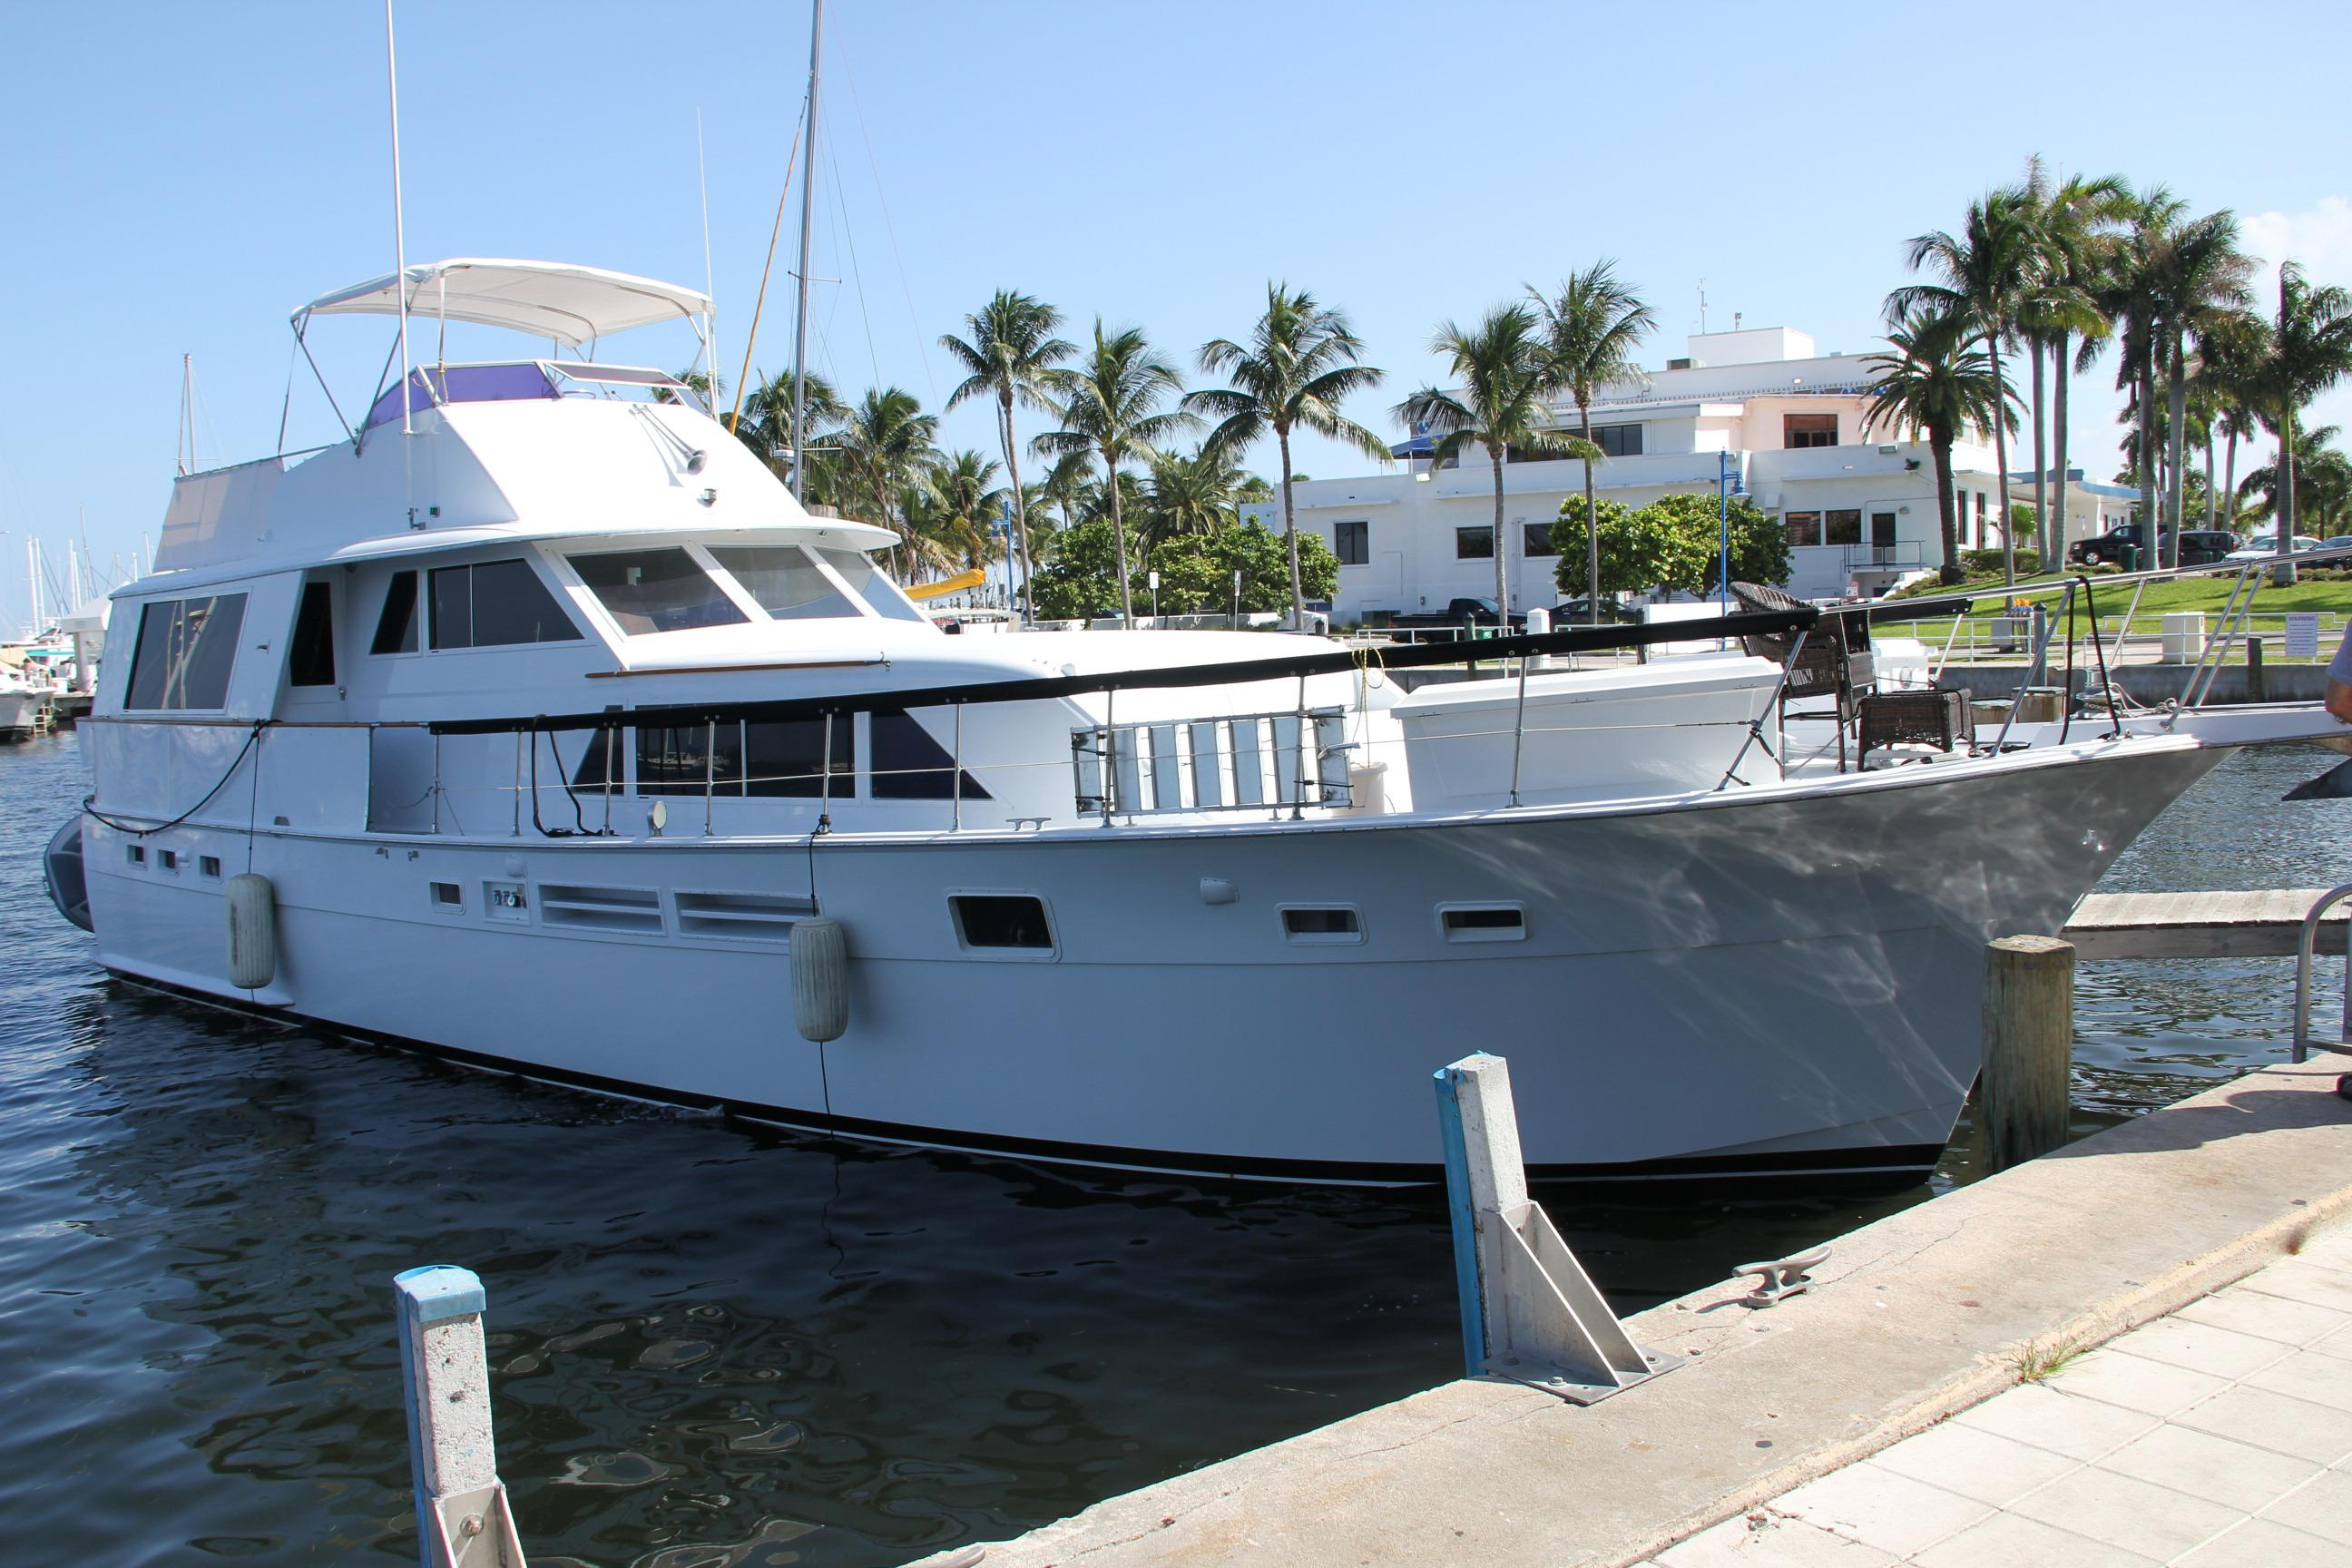 58 hatteras 1975 summer nights ii for sale in dania beach for Motor yachts for sale in florida